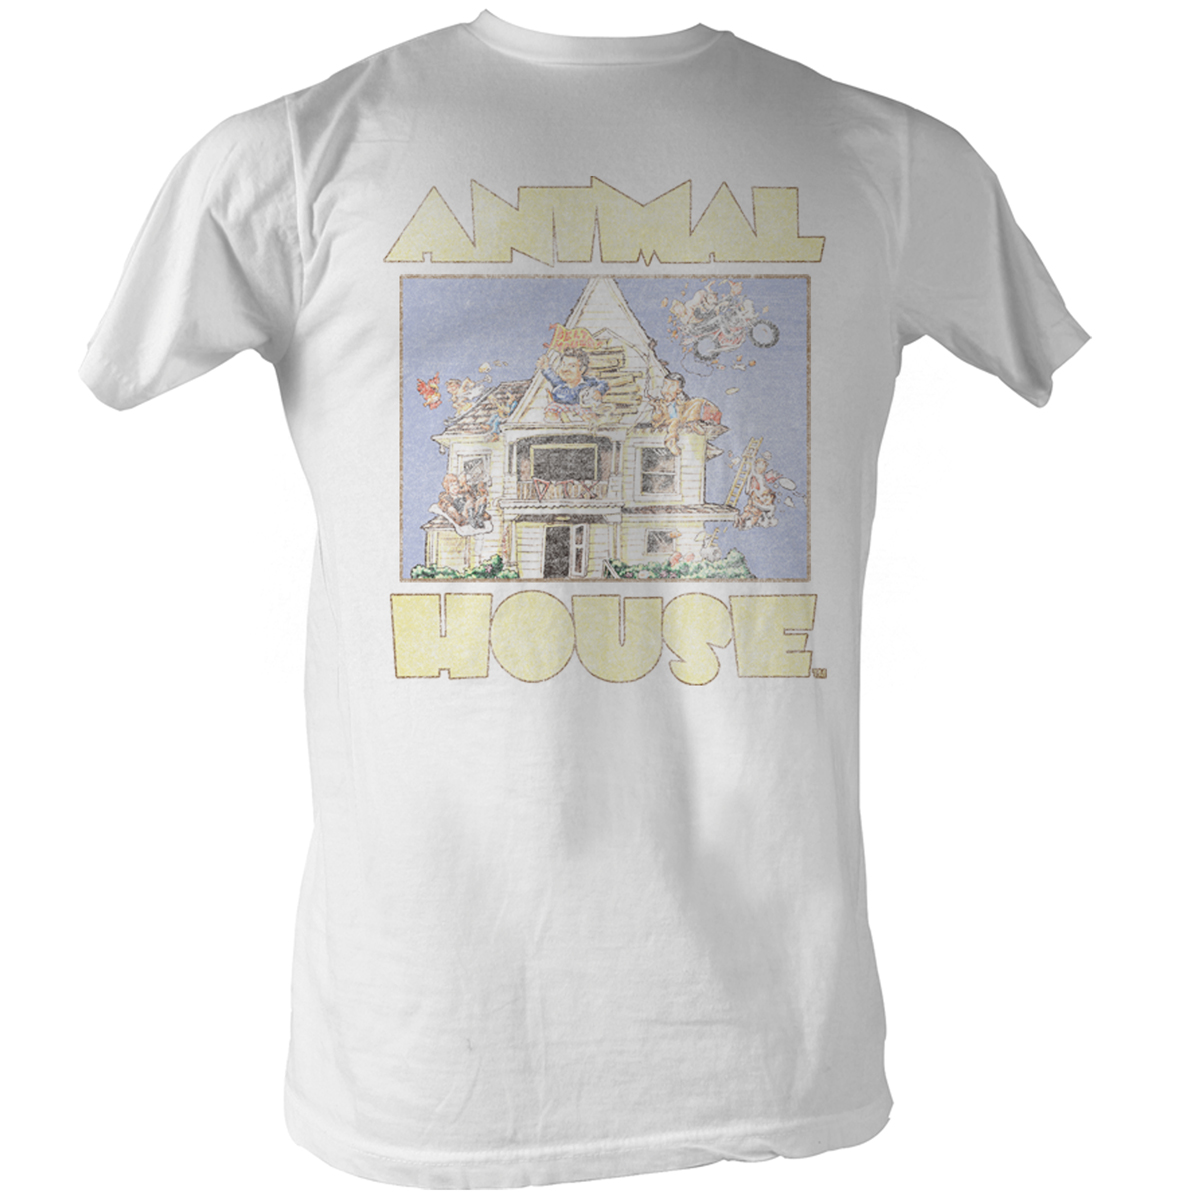 Image of Animal House - Cartoon Mens T-Shirt In White